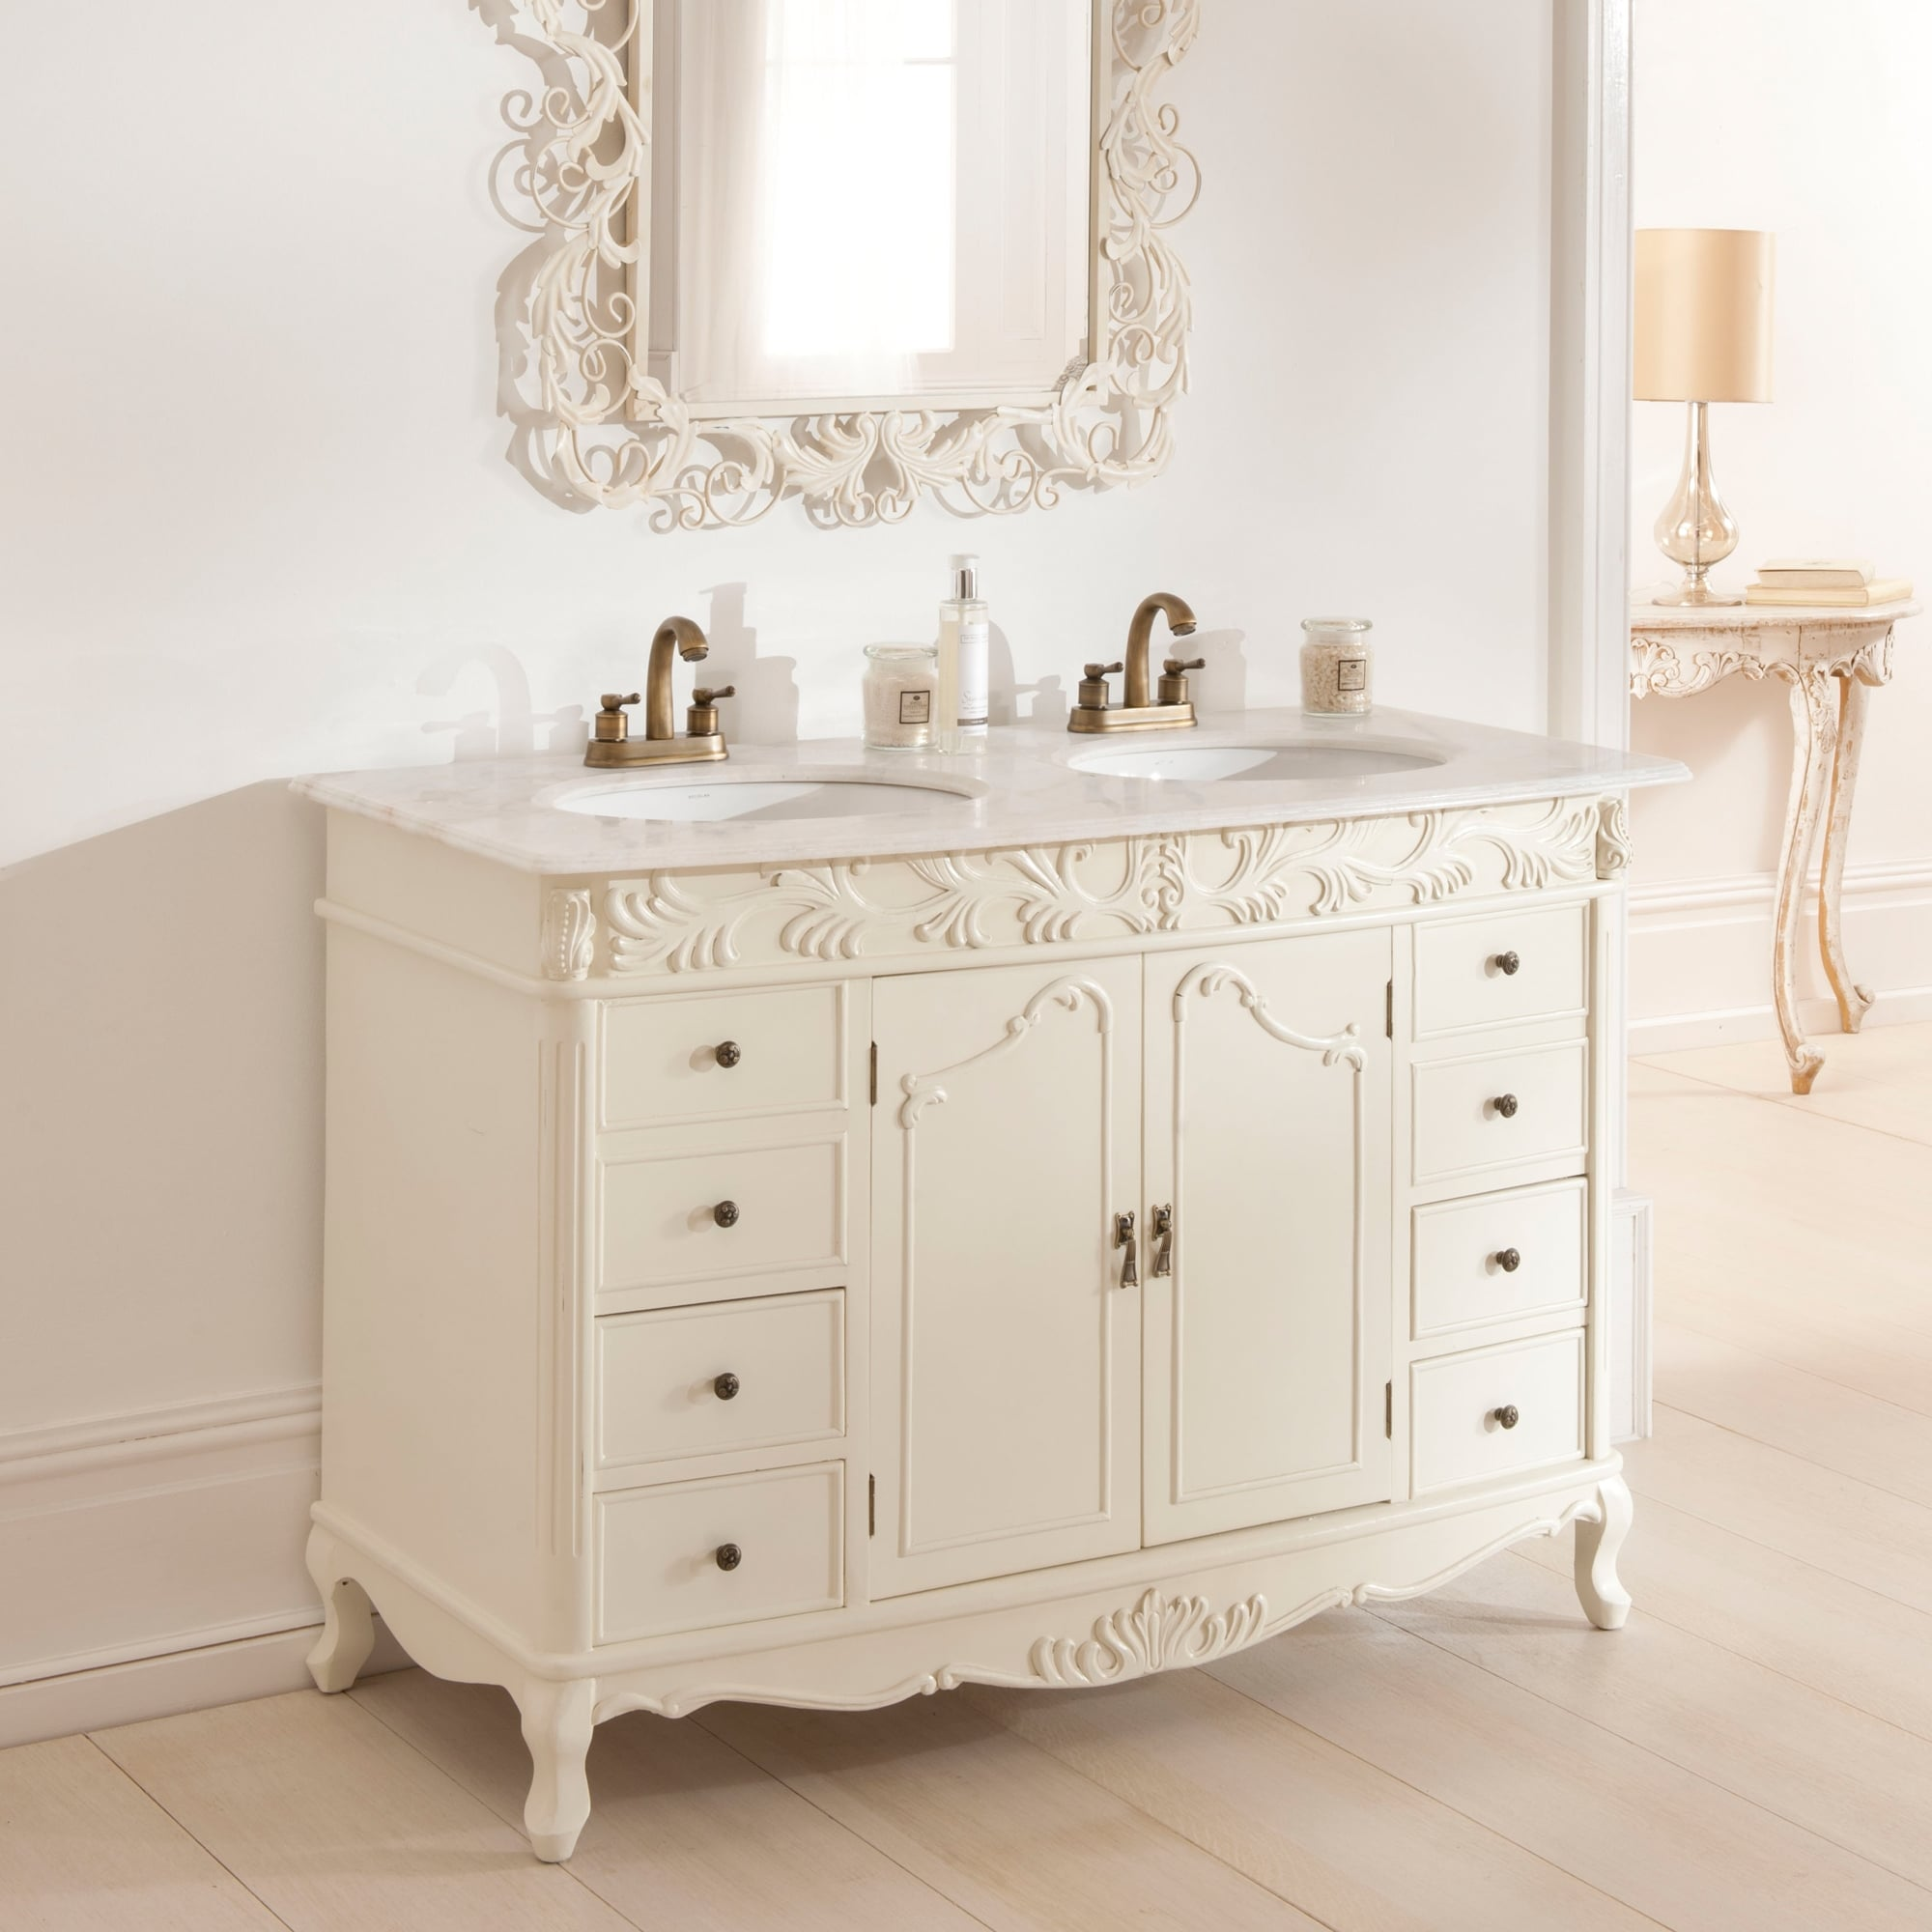 French style bathroom vanity